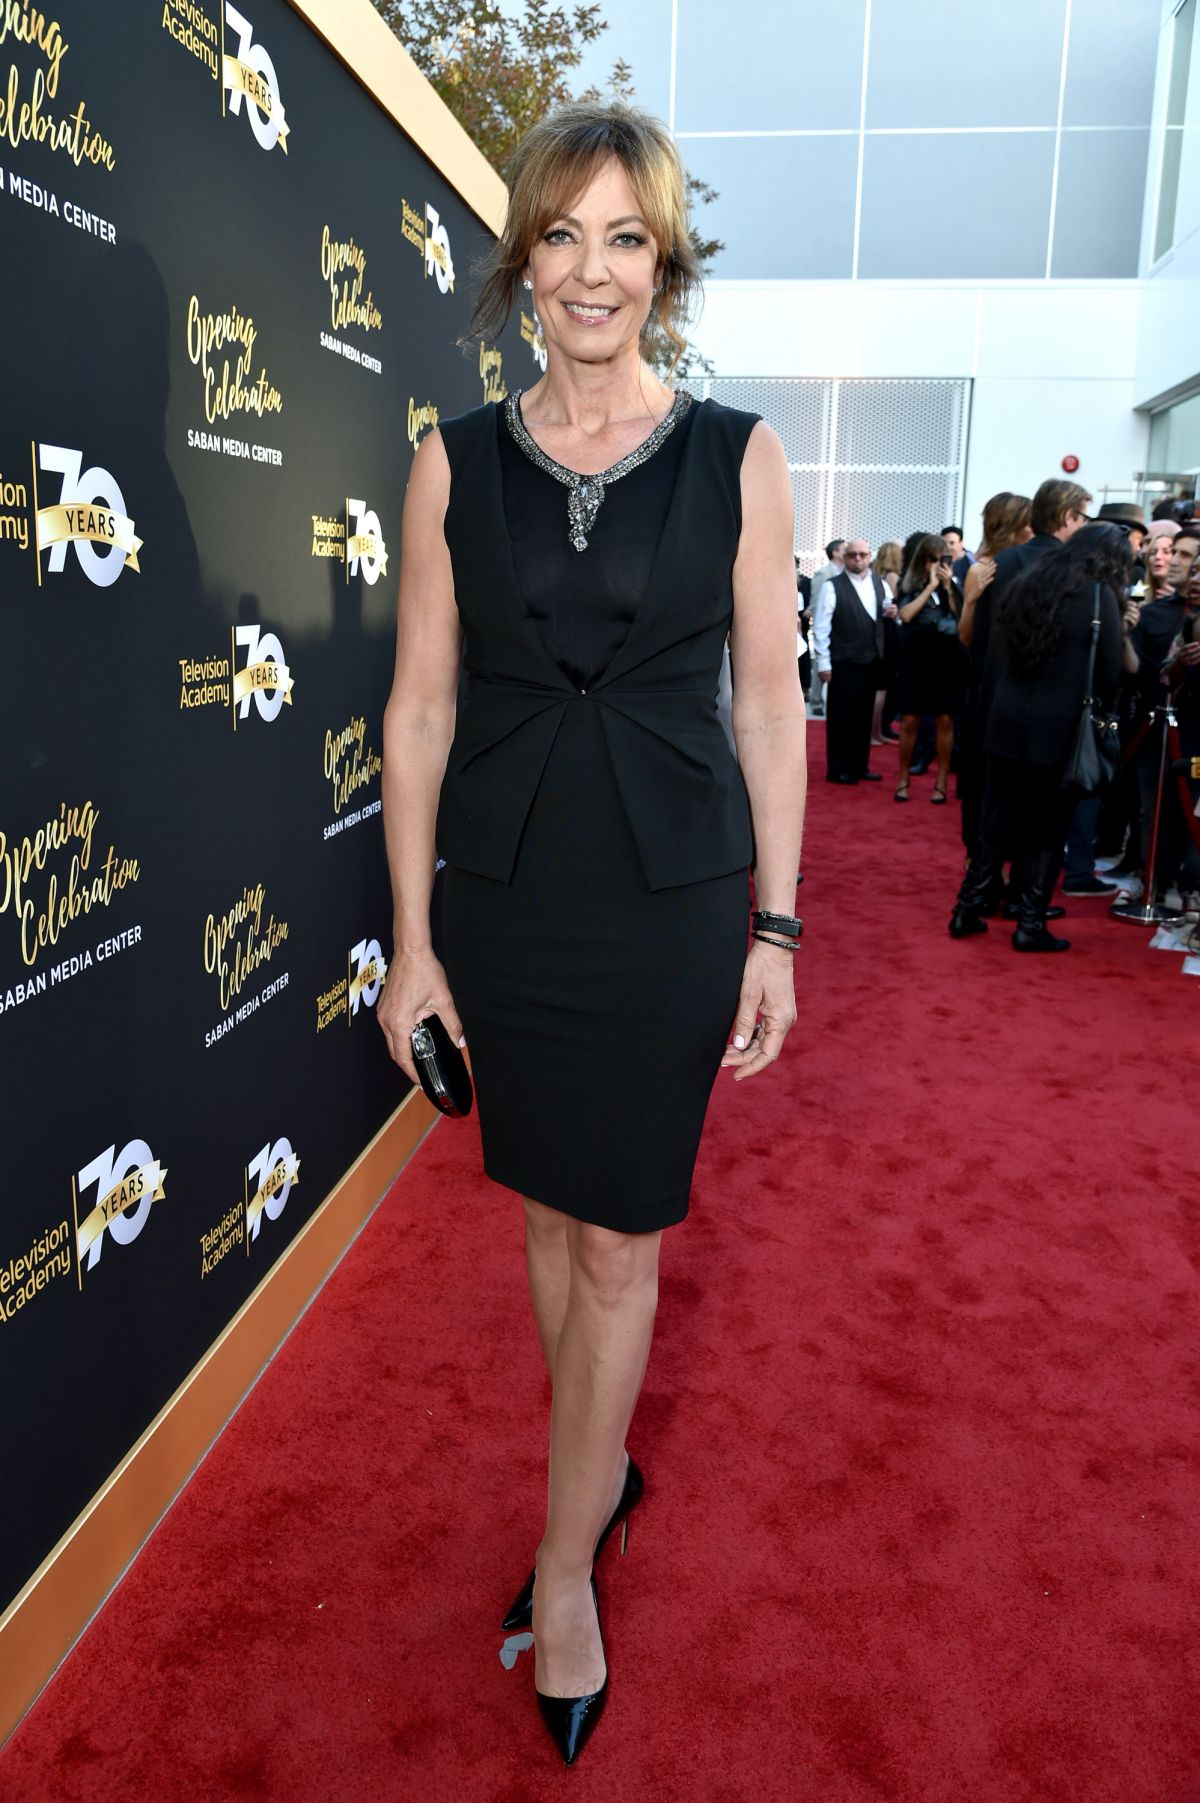 ALLISON JANNEY at Television Academy 70th Anniversary Celebration in Los Angeles 06/02/2016